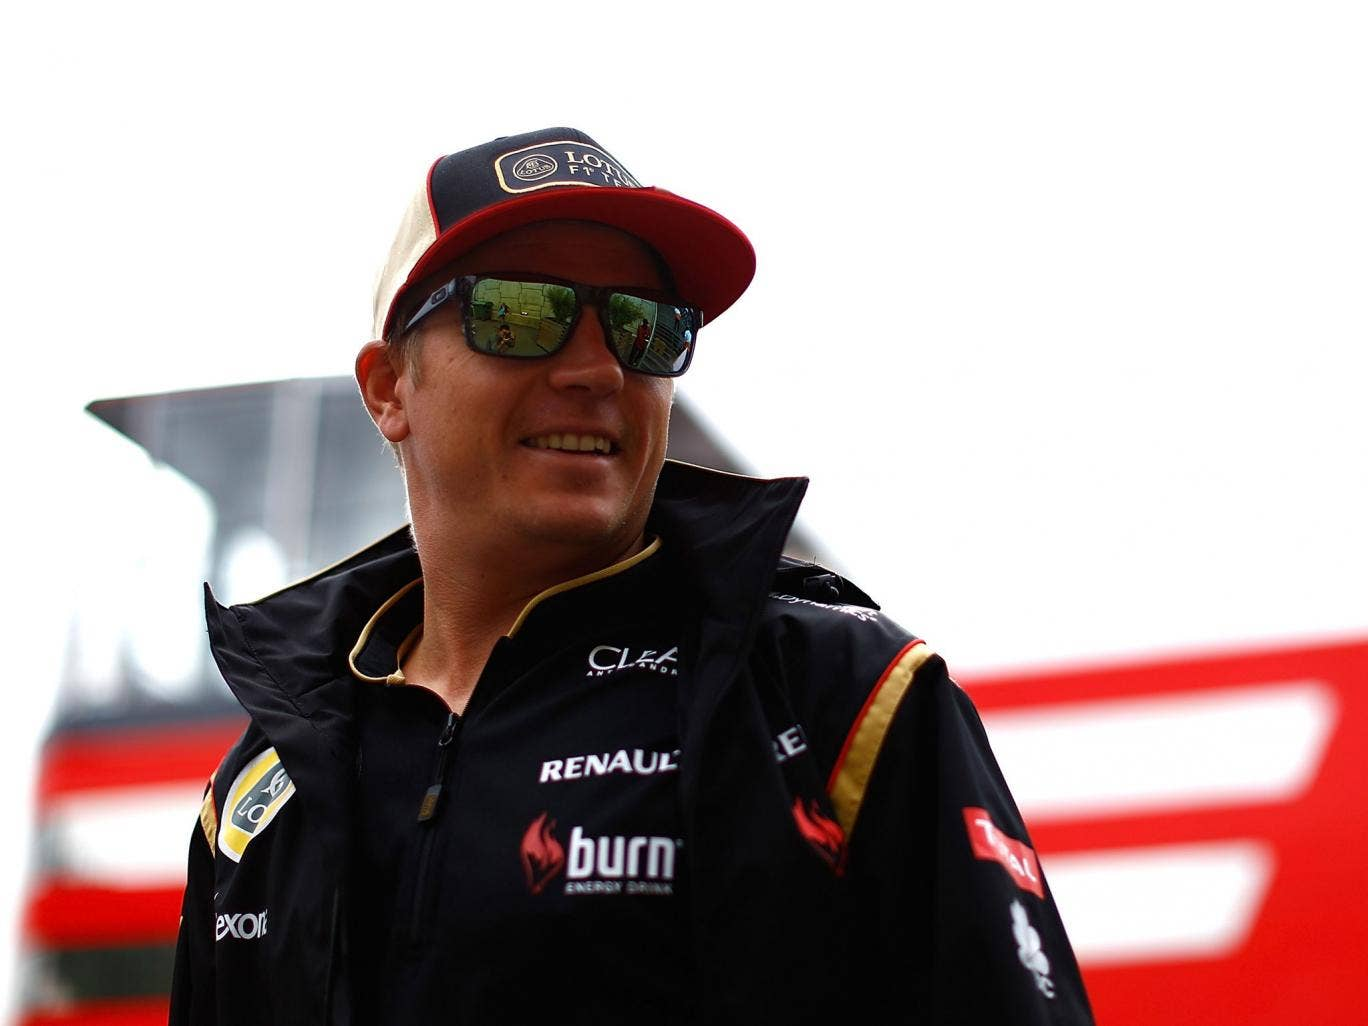 Martin Whitmarsh, has hinted he may yet make a move for Kimi Raikkonen (pictured) after failing to sign him last year